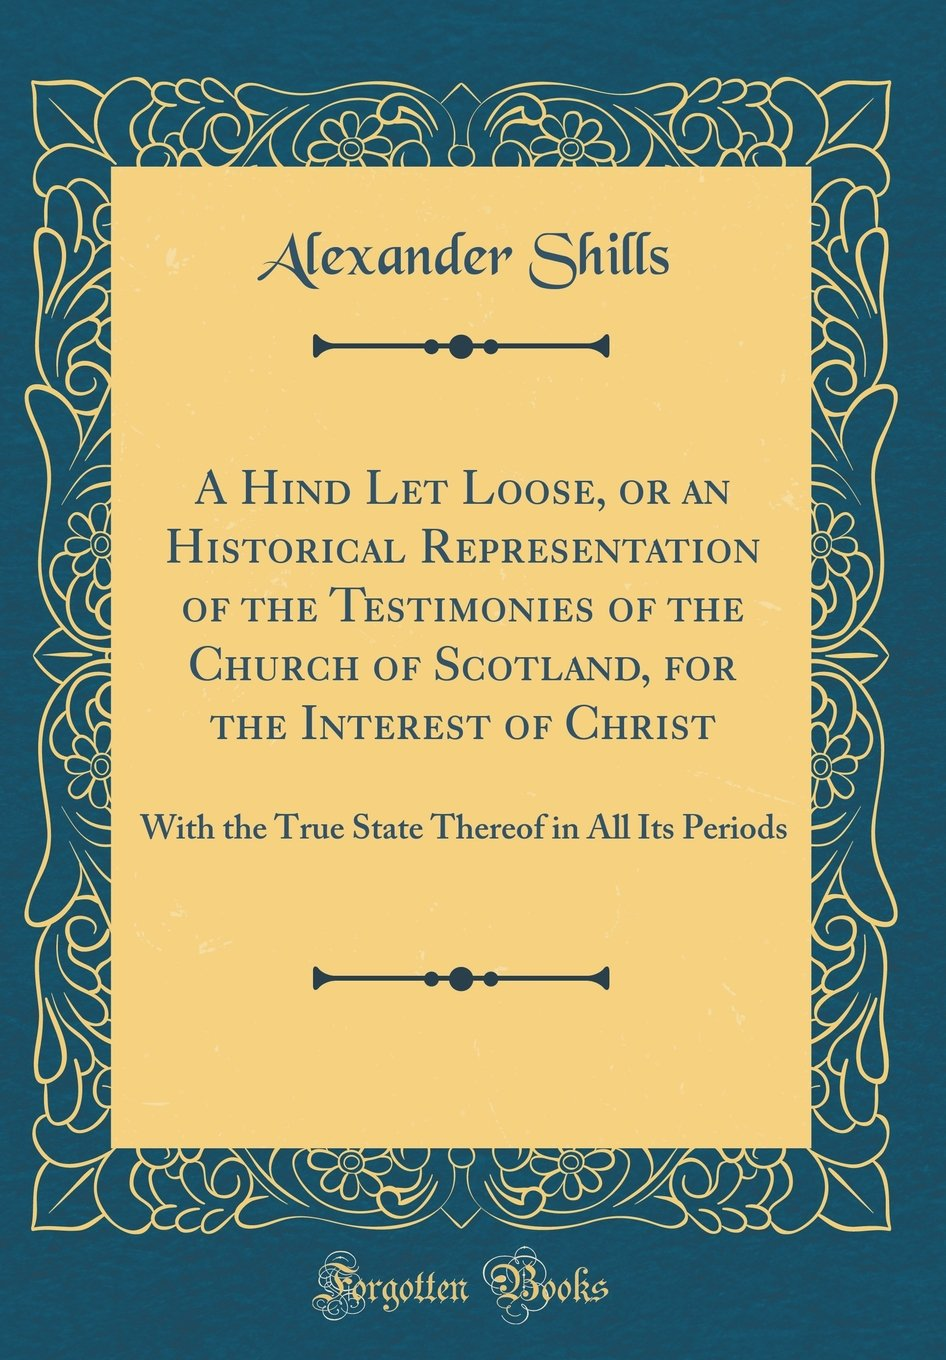 A Hind Let Loose, or an Historical Representation of the Testimonies of the Church of Scotland, for the Interest of Christ: With the True State Thereof in All Its Periods (Classic Reprint) pdf